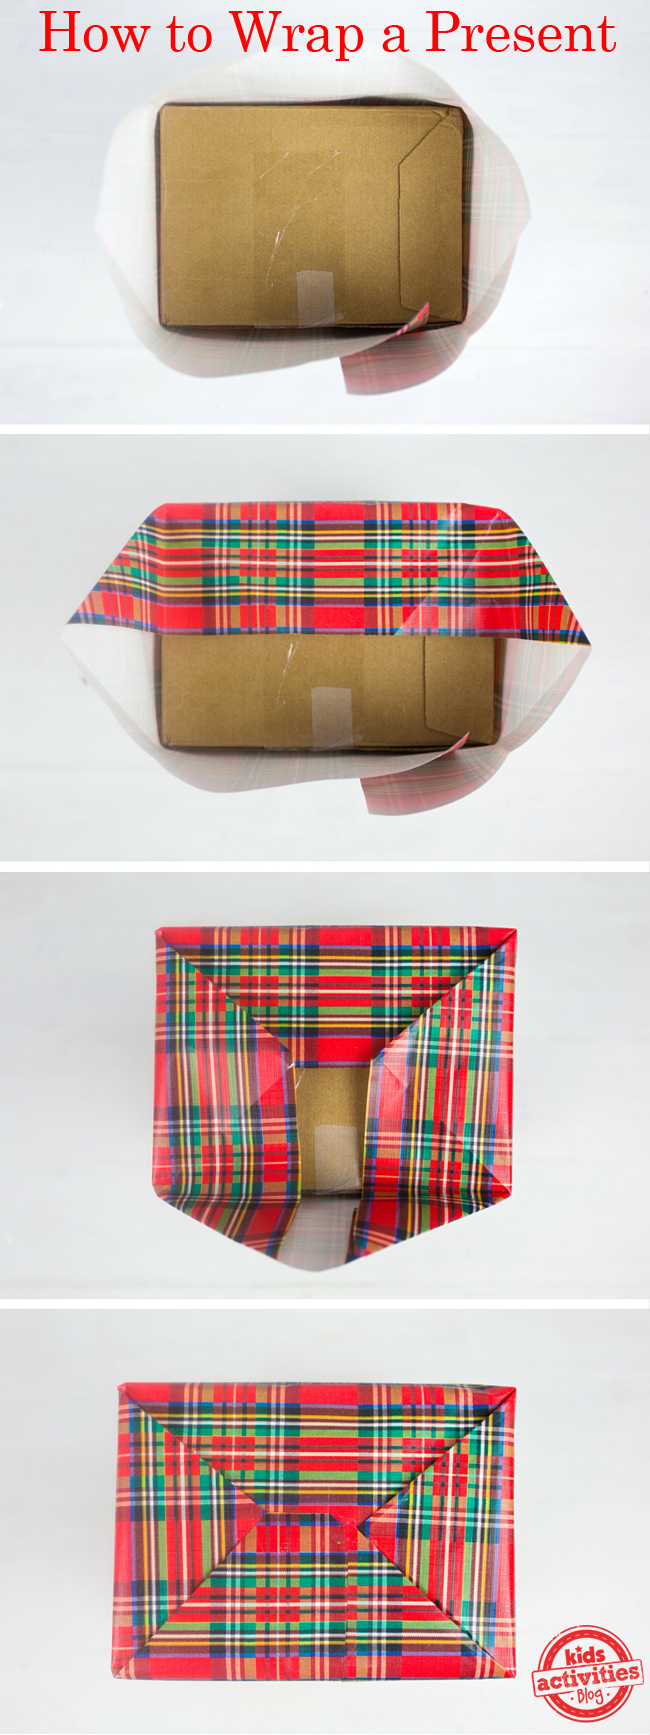 How to wrap a present kids activities blog for How to wrap presents with wrapping paper